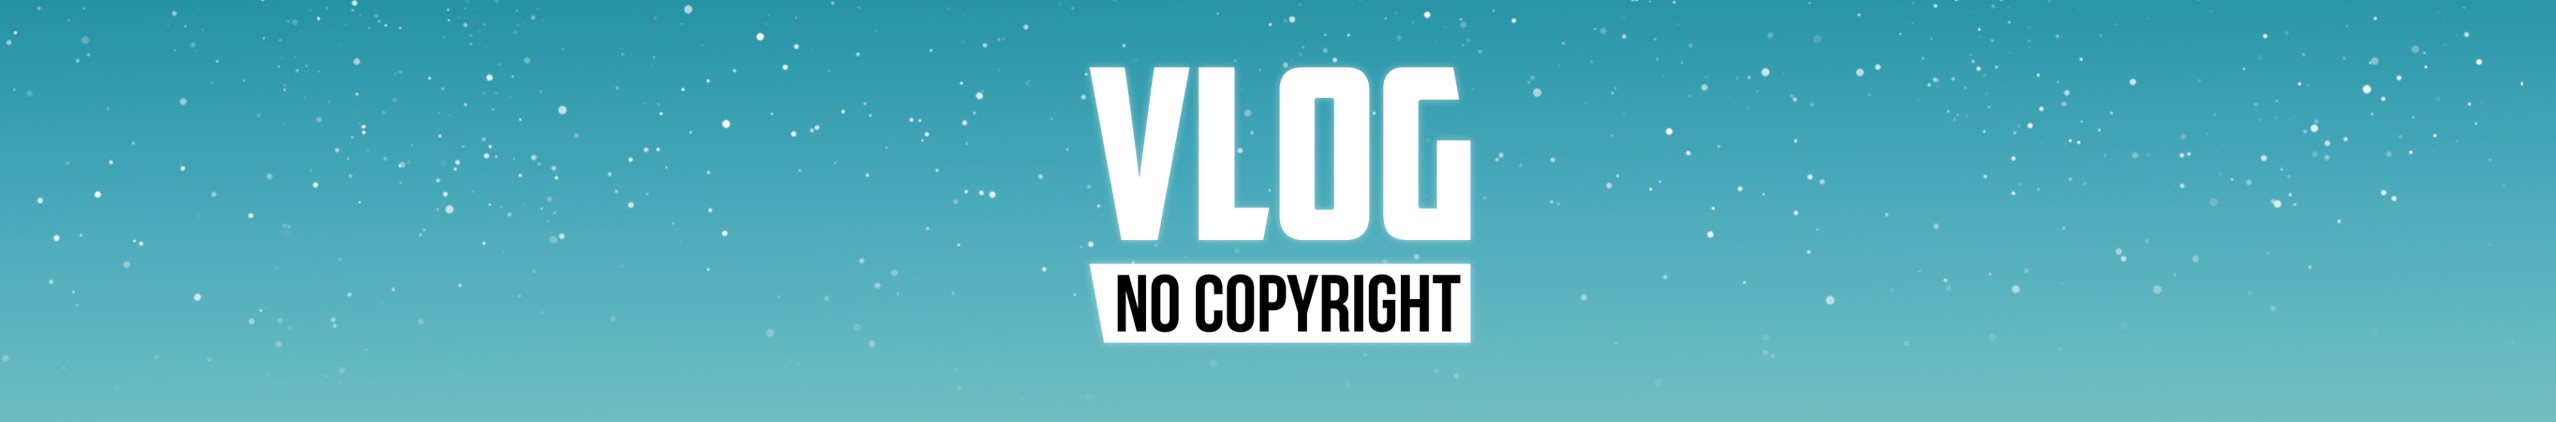 Vlog No Copyright Music Youtube Channel Analytics And Report Powered By Noxinfluencer Mobile